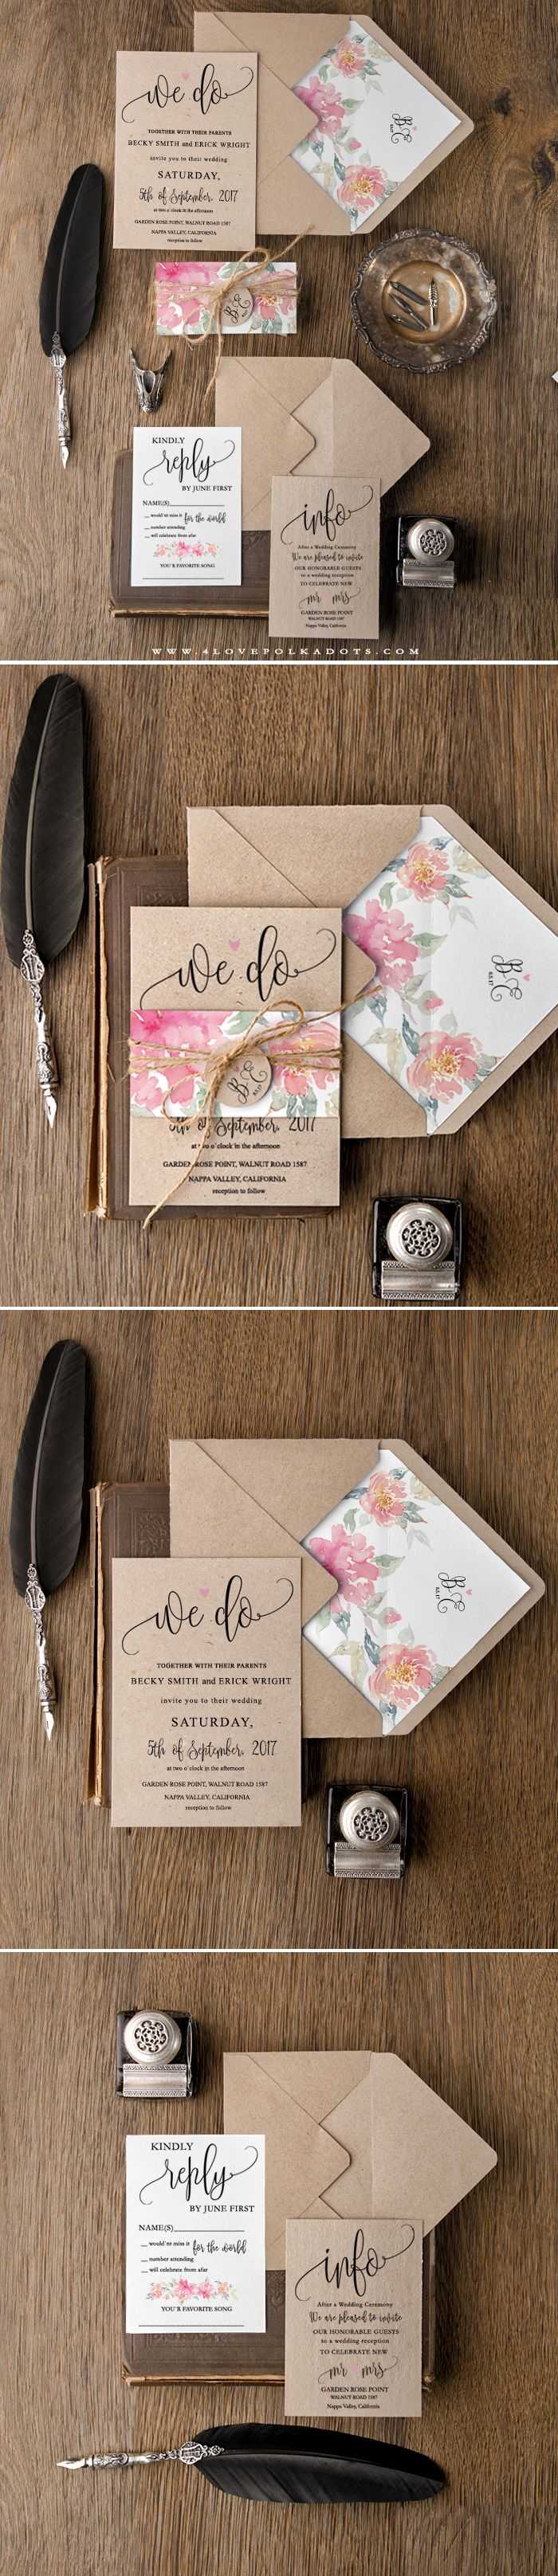 Let our designers create dream wedding invitations